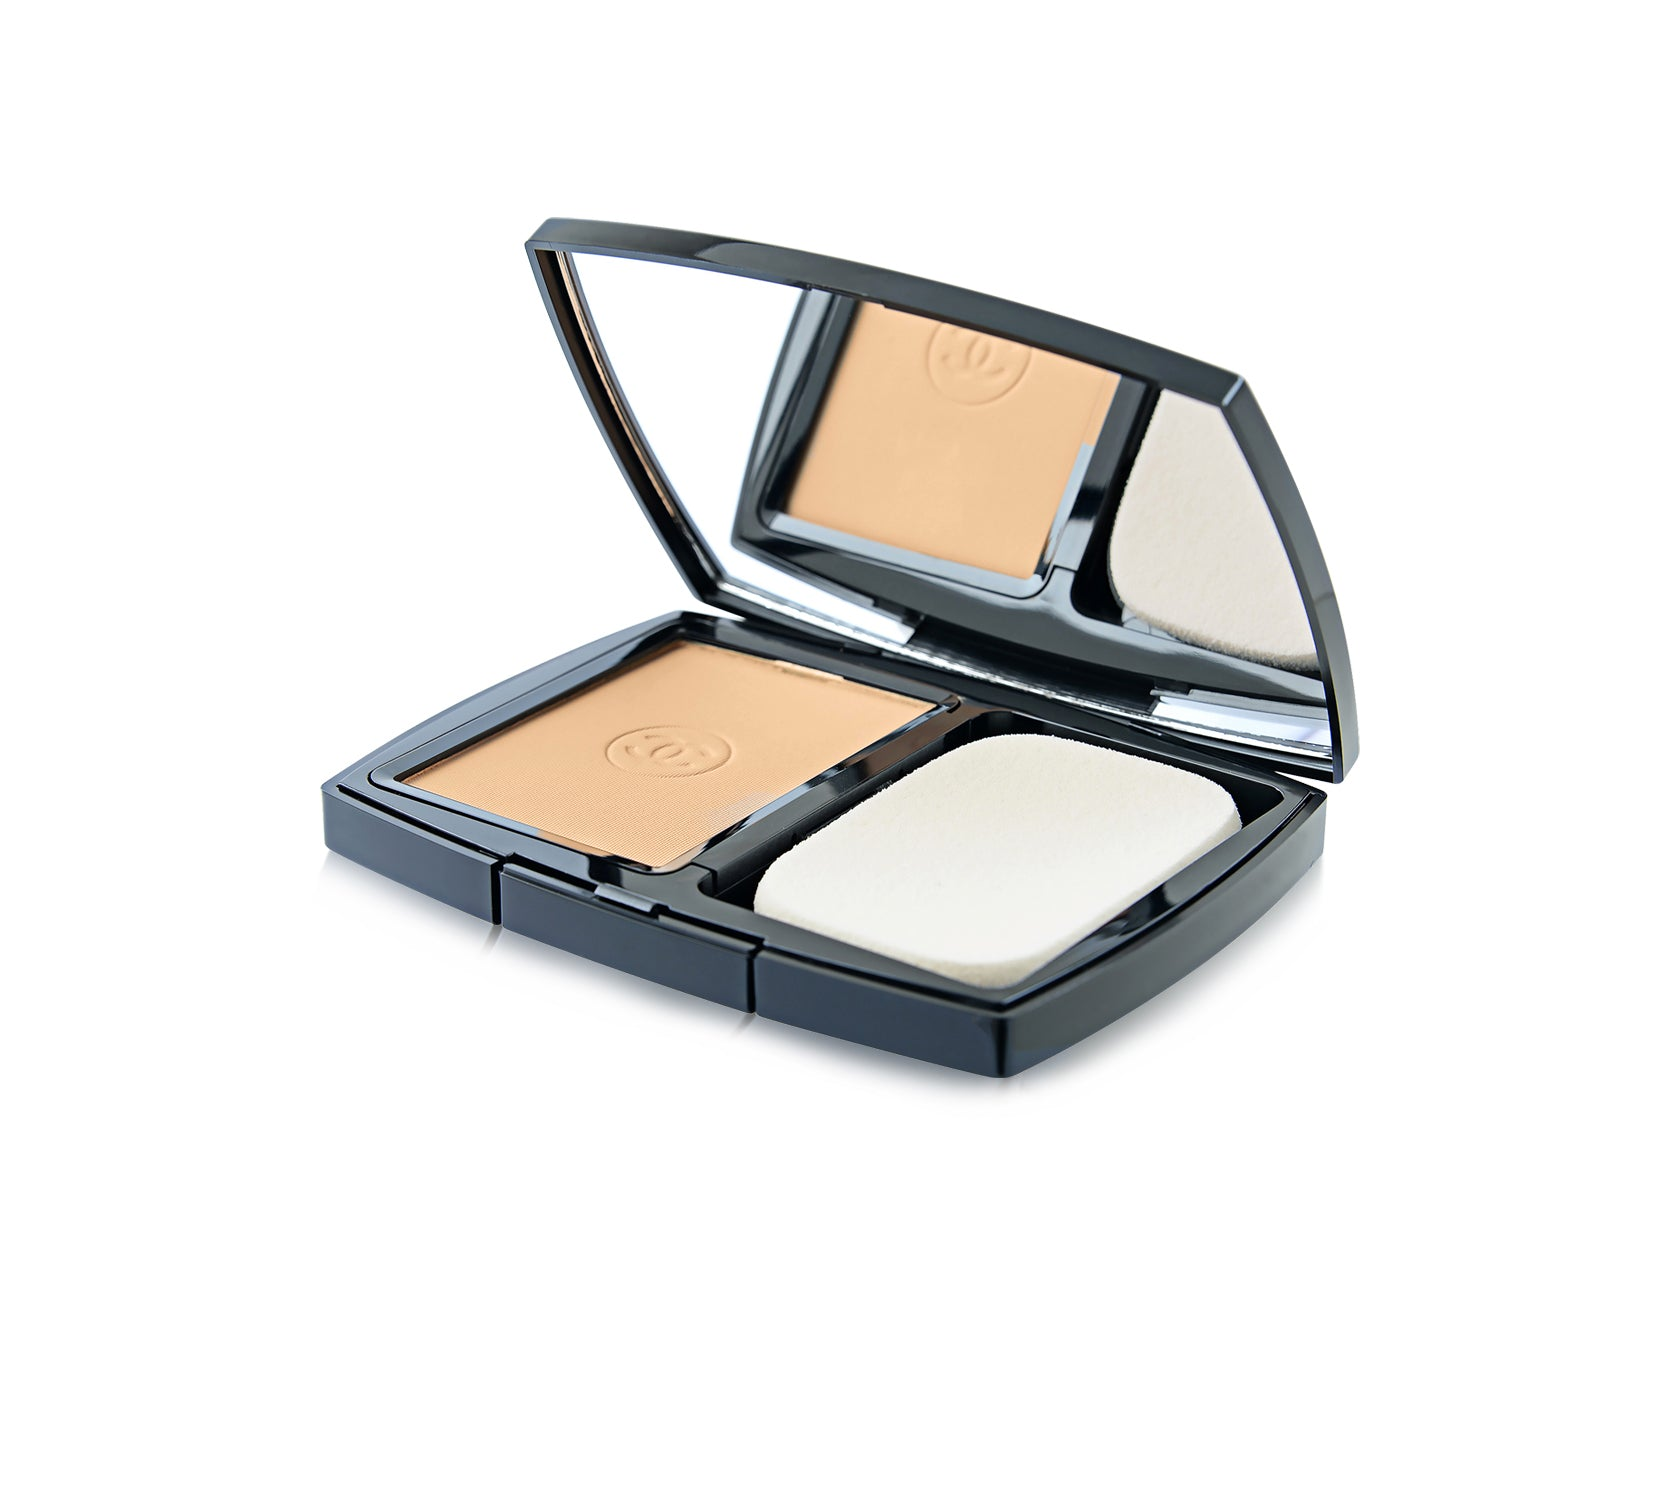 Le Teint Ultra Ultrawear Flawless Compact Foundation Luminous Matte Finish SPF15